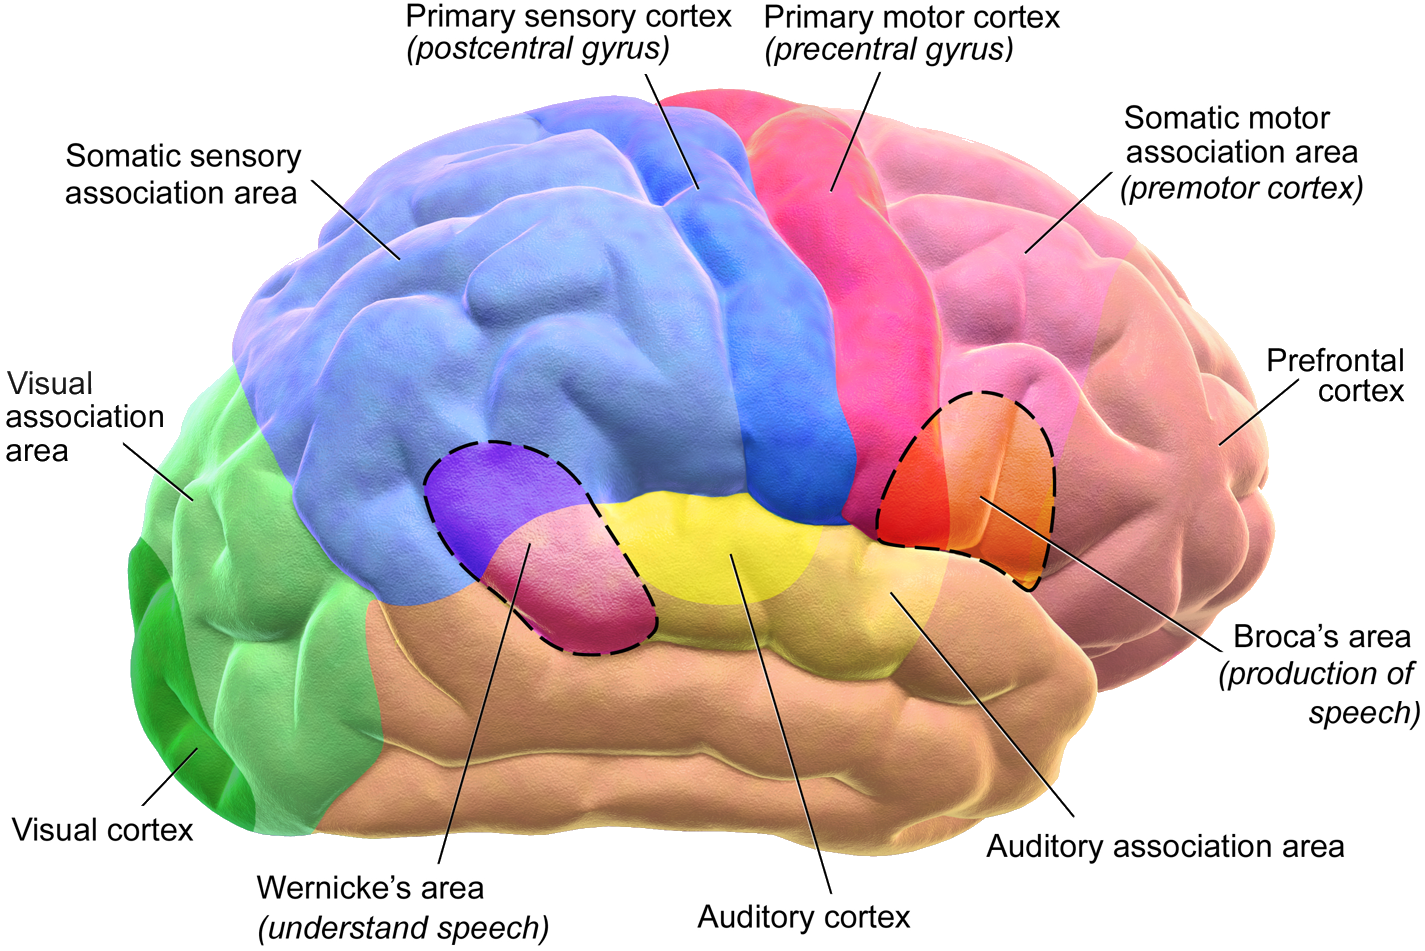 human brain wikipediaa diagram of the functional areas of the human brain